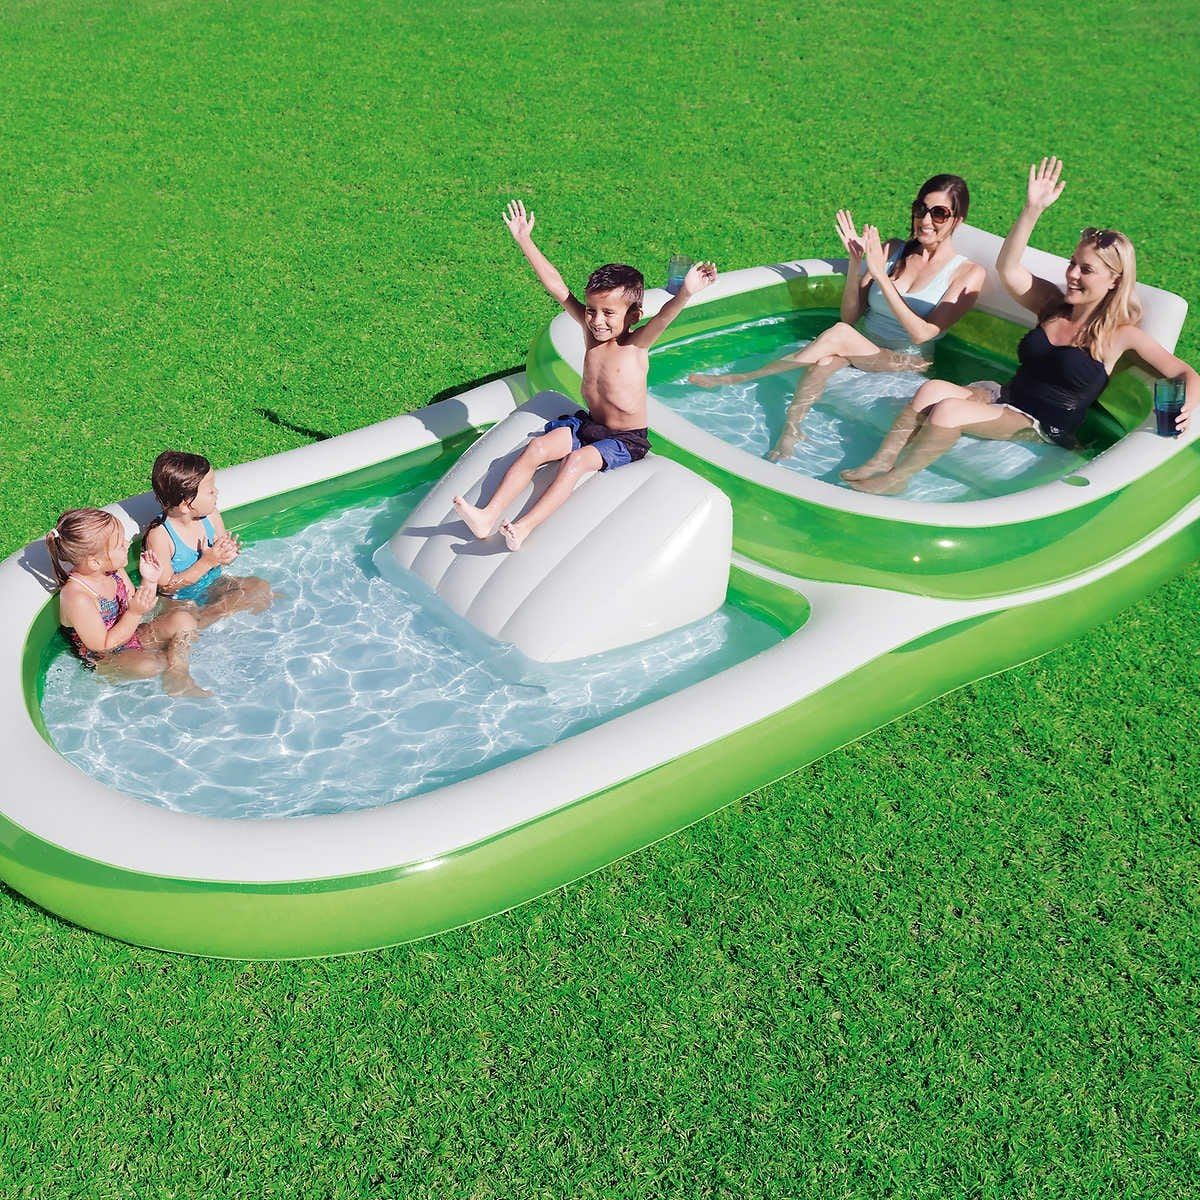 40 Inflatable Pool At Target Is A Summer Must Have Simplemost In 2020 Family Inflatable Pool Inflatable Swimming Pool Children Swimming Pool